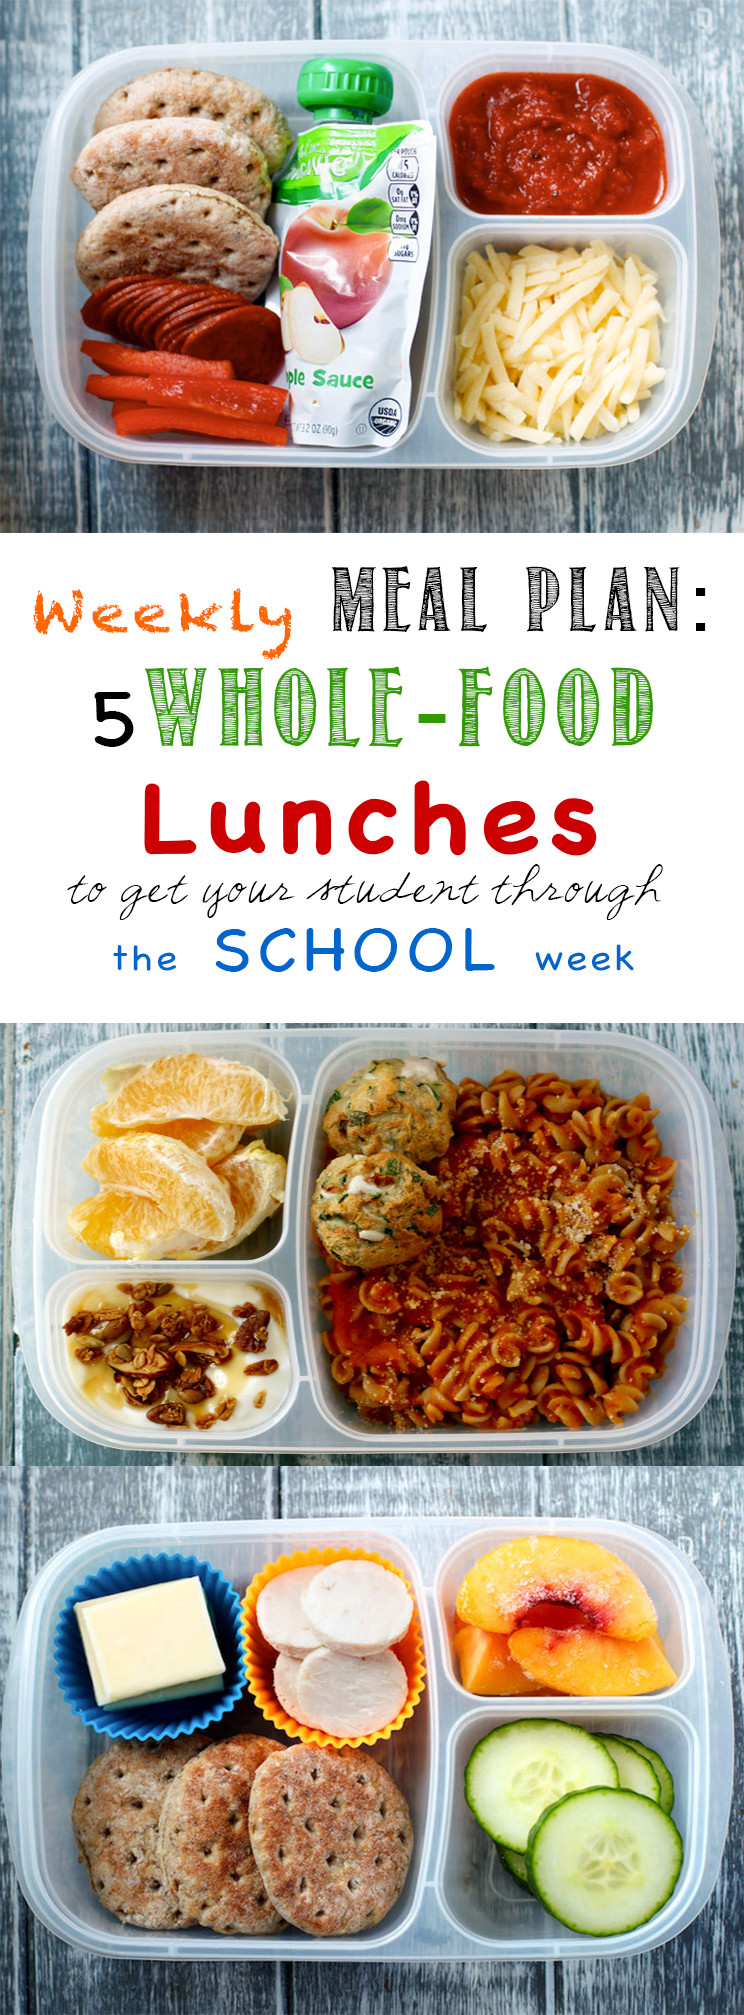 Weekly Meal Plan: School Lunch Edition - Planning lunches is monotonous and time consuming. This will help!